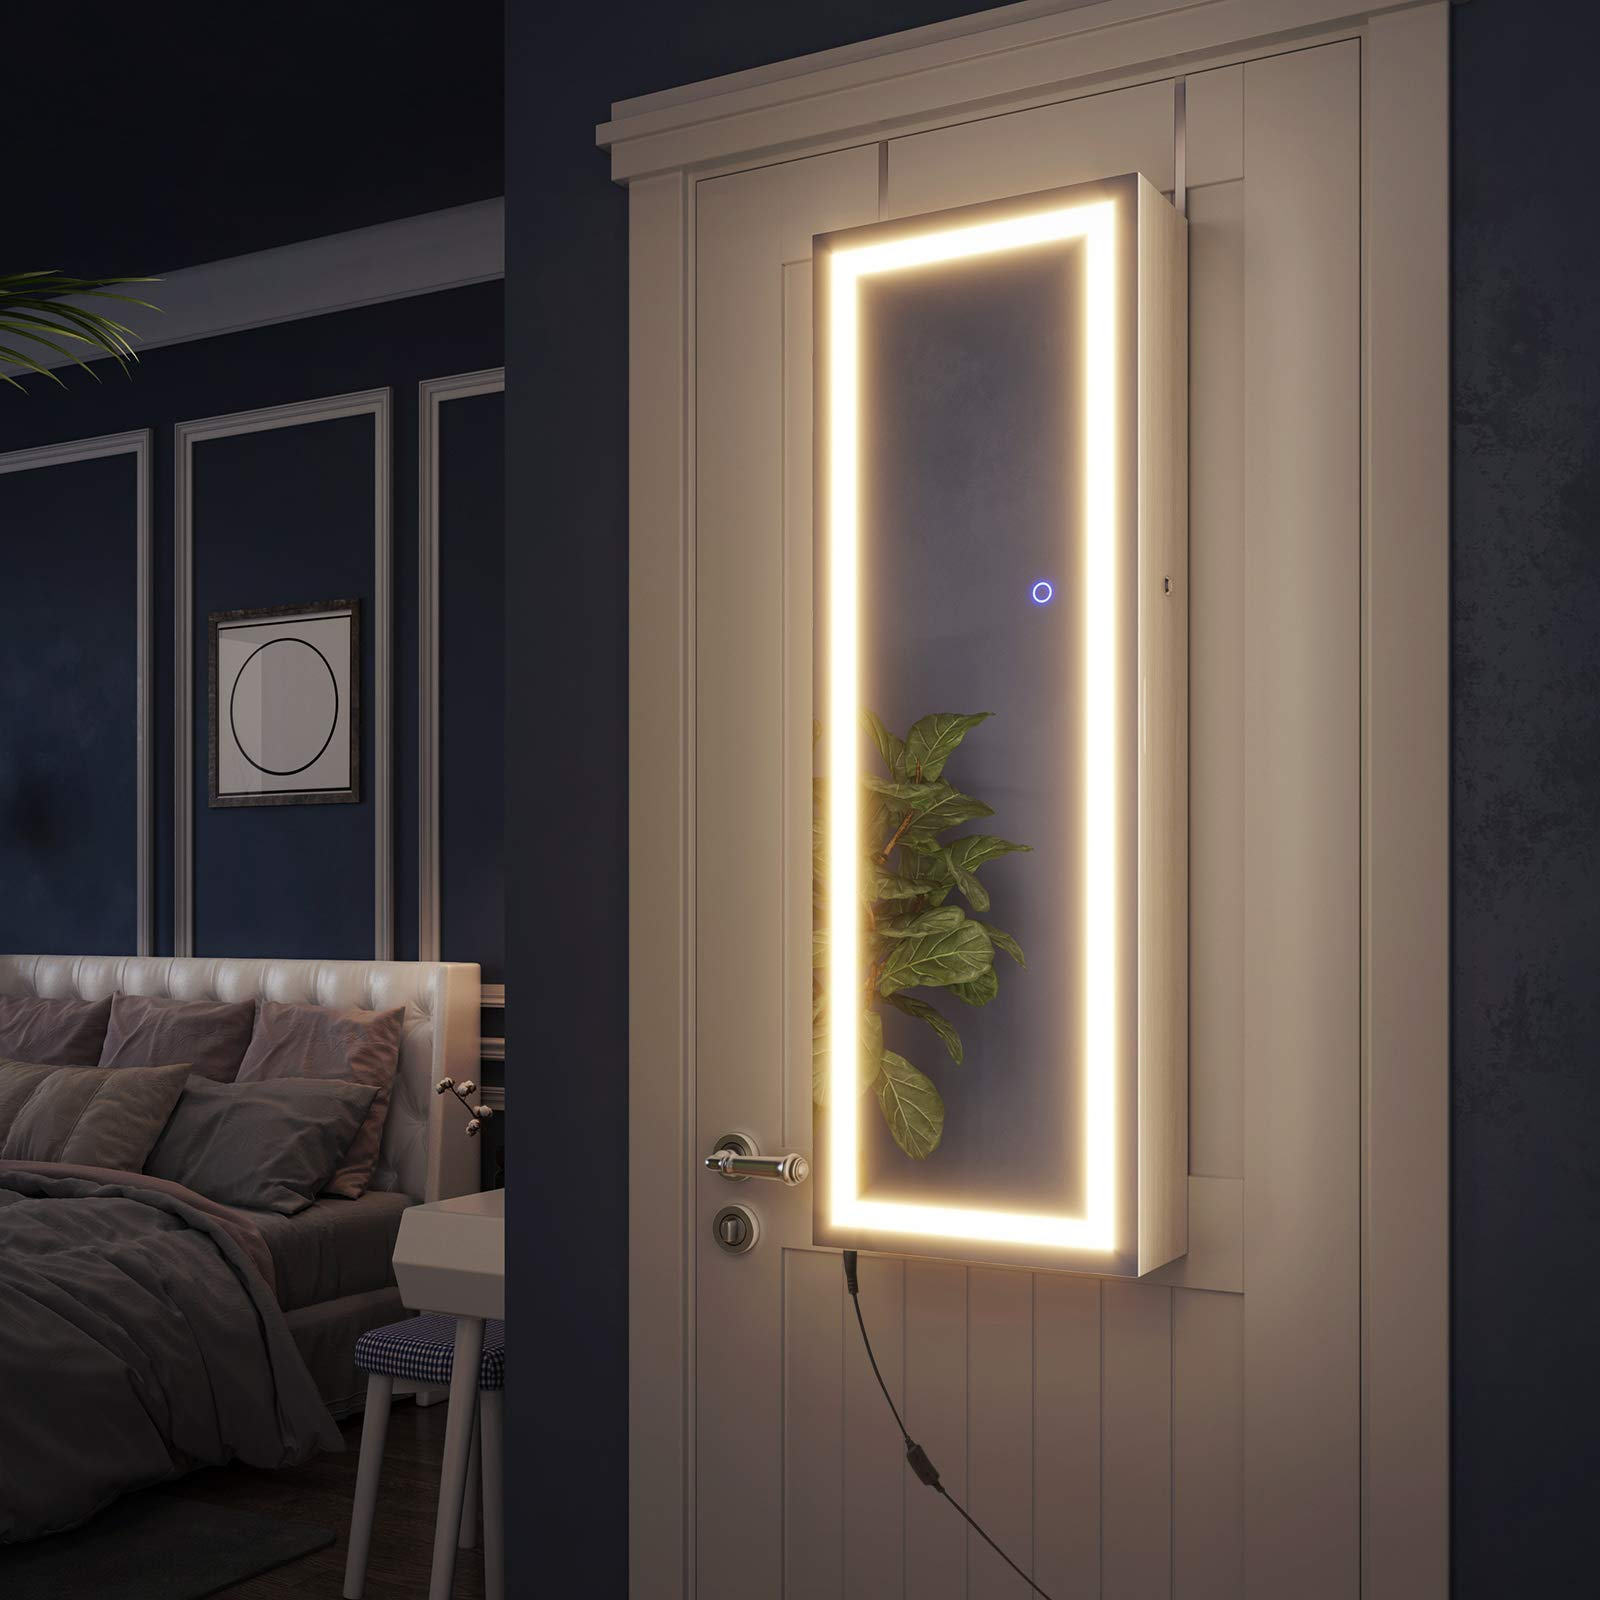 SONGMICS Jewelry Cabinet with LED Light Strip, Wall/Door ...